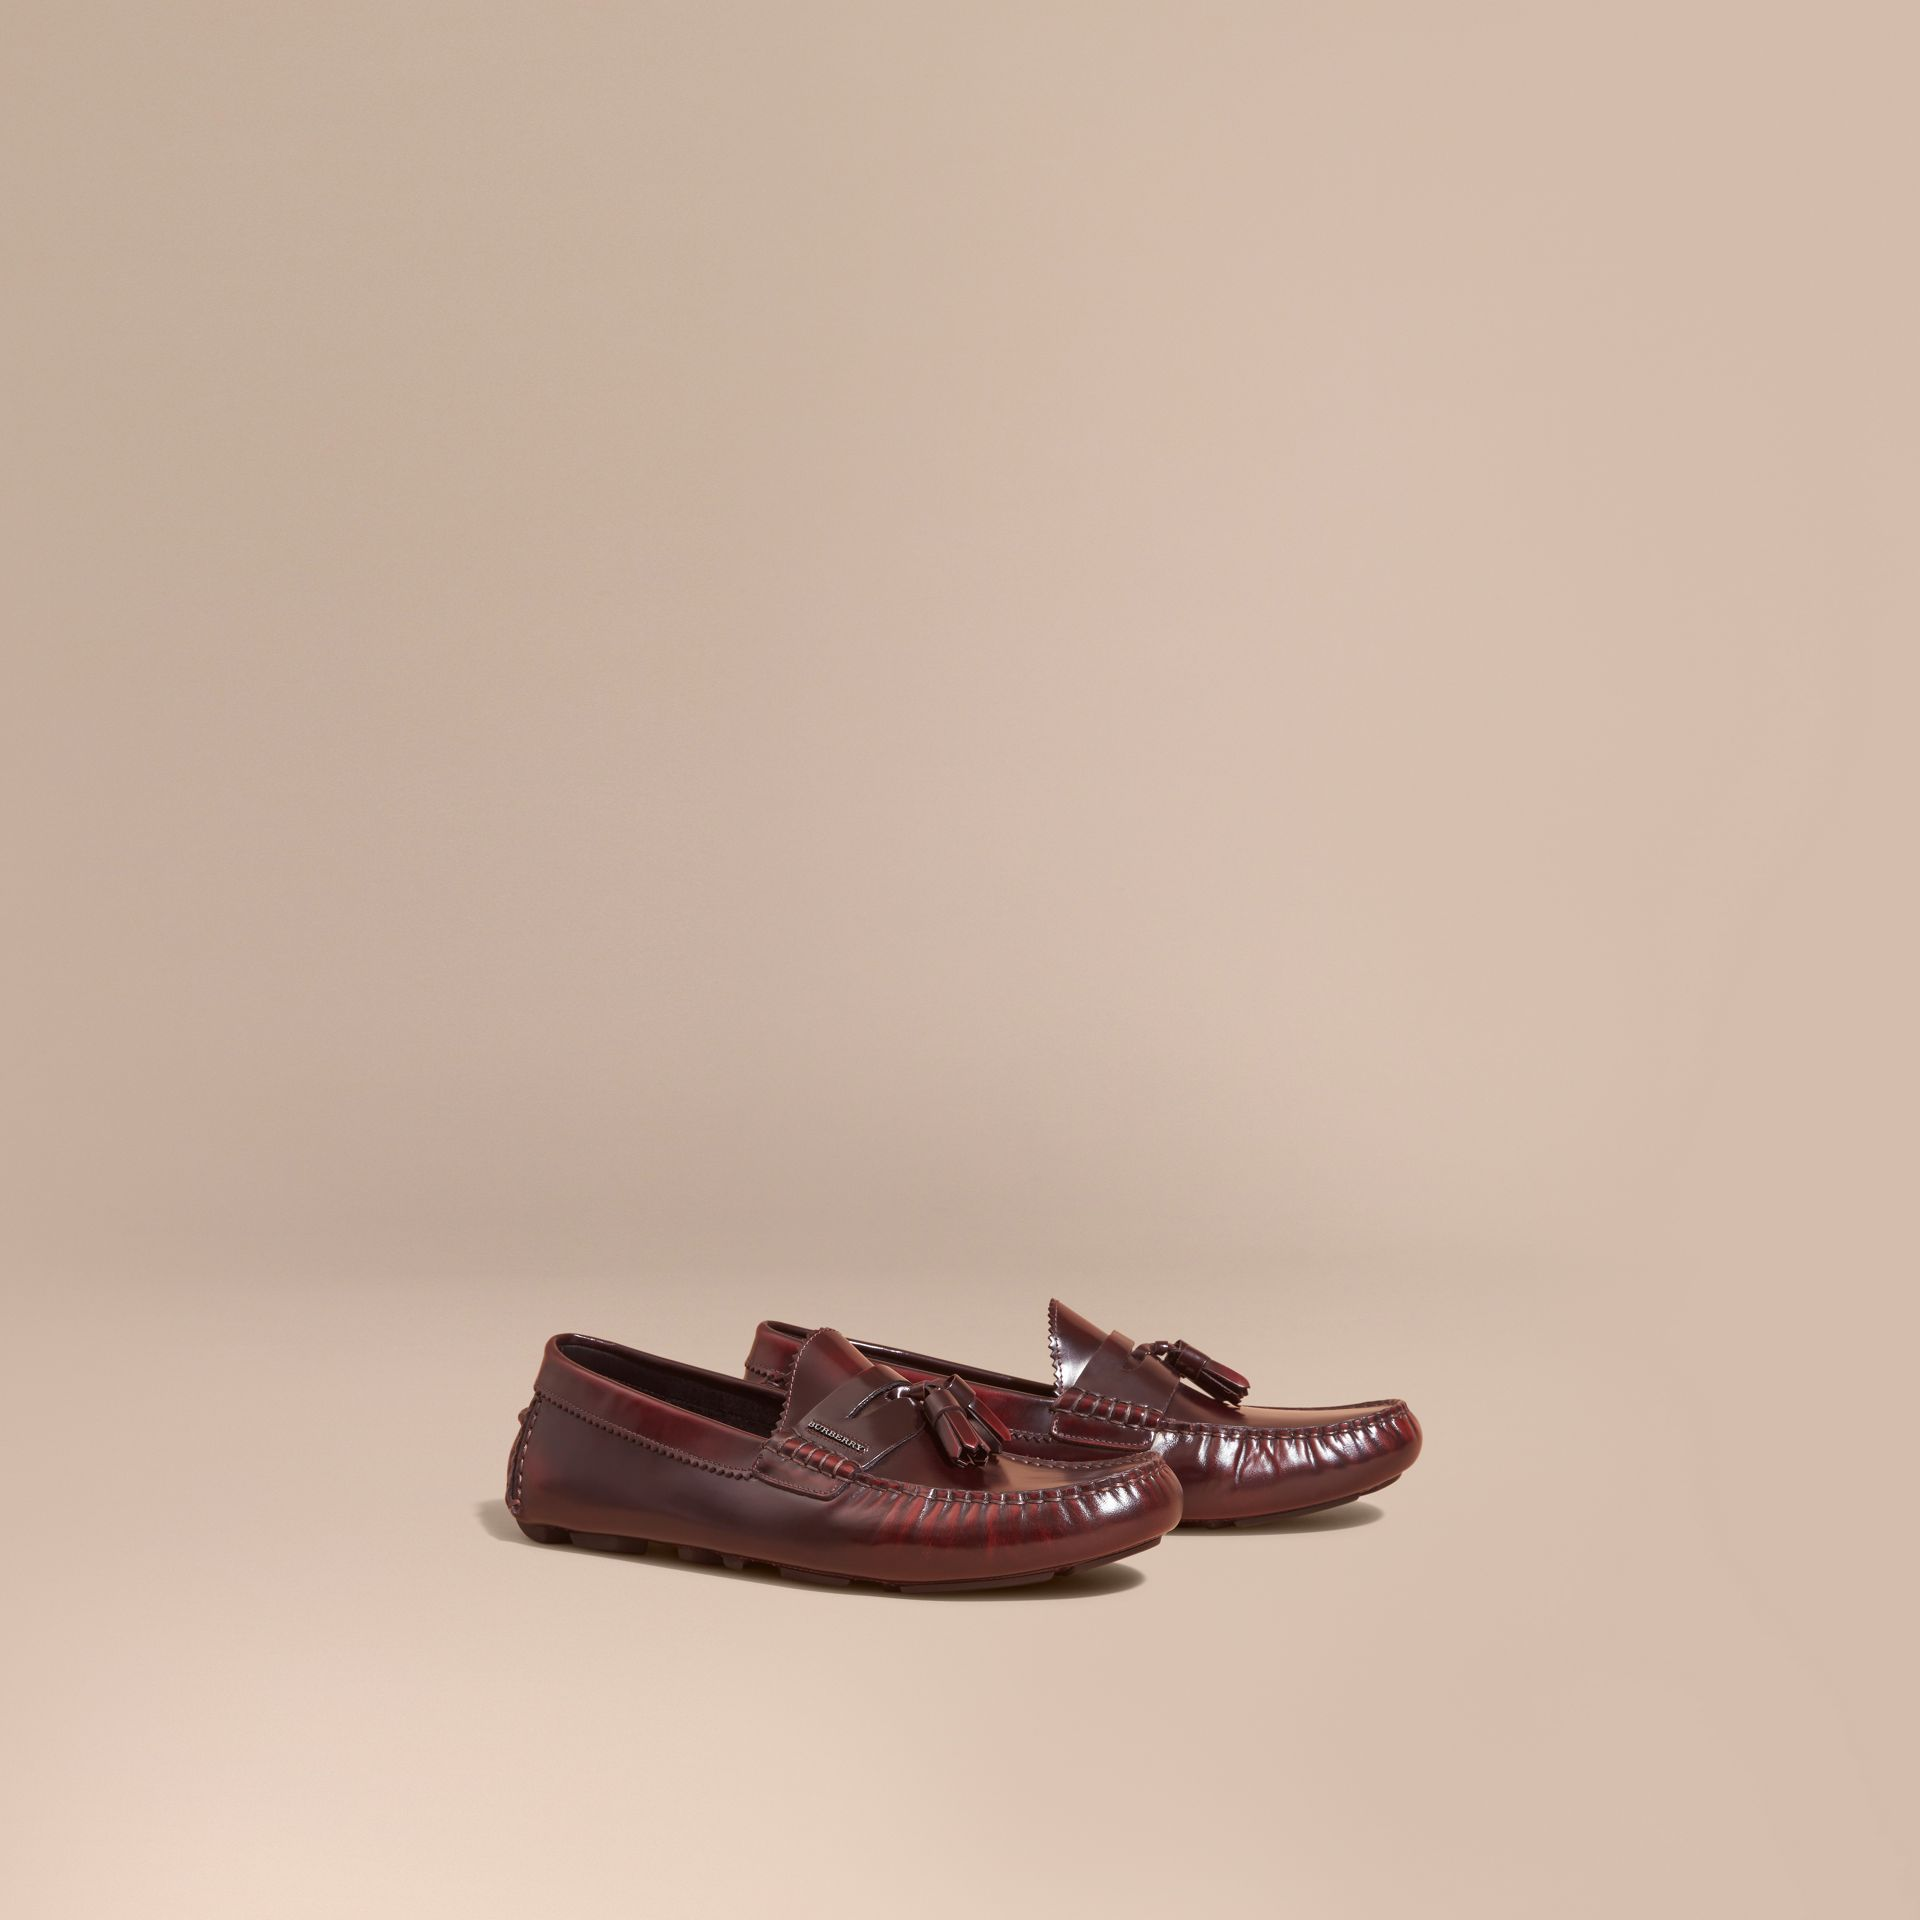 Bordeaux Tasselled Polished Leather Loafers Bordeaux - gallery image 1